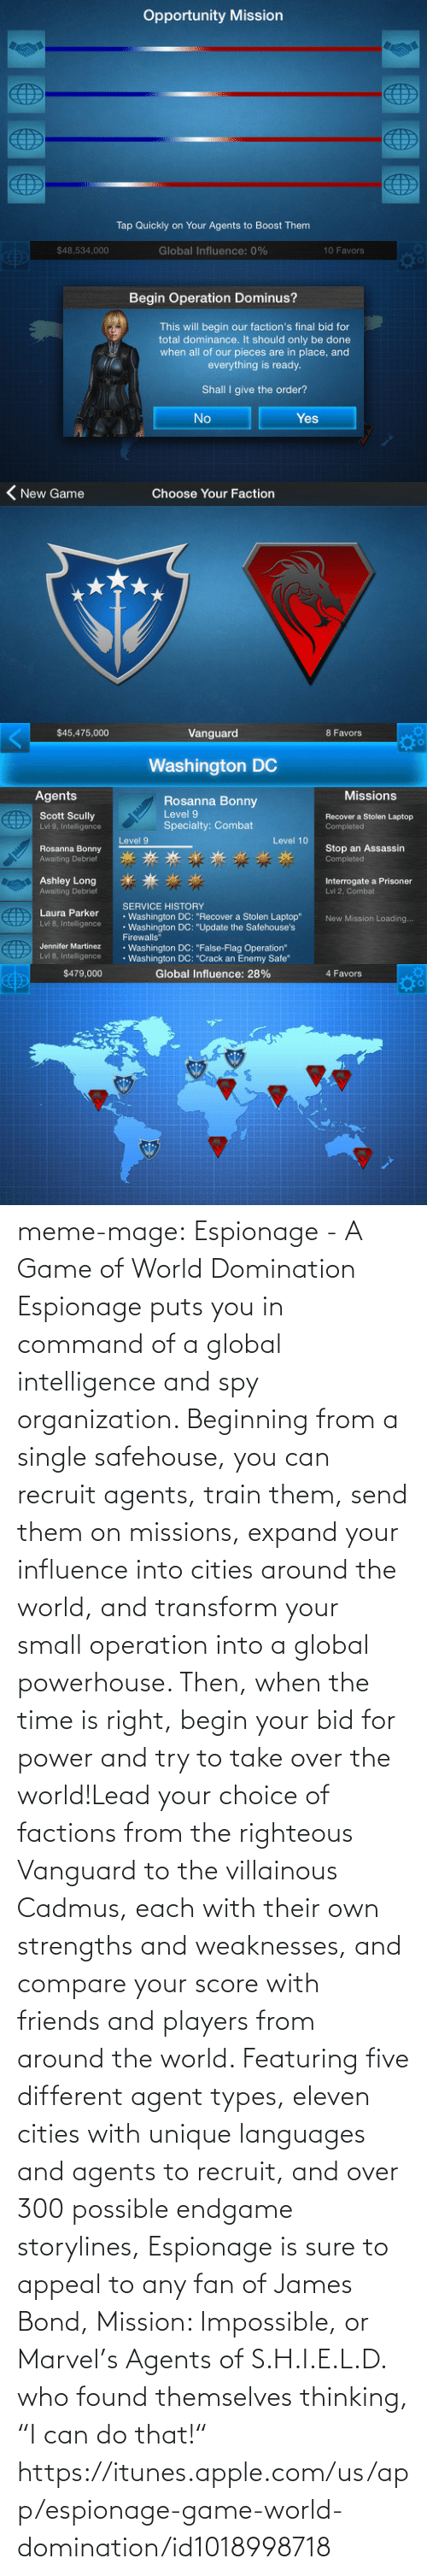 """Choose Your: Opportunity Mission  Tap Quickly on Your Agents to Boost Them  ИТТ  ИТN  ИТN  ИТN   $48,534,000  Global Influence: 0%  10 Favors  Begin Operation Dominus?  This will begin our faction's final bid for  total dominance. It should only be done  when all of our pieces are in place, and  everything is ready.  Shall I give the order?  No  Yes   ( New Game  Choose Your Faction   $45,475,000  Vanguard  8 Favors  Washington DC  Agents  Missions  Rosanna Bonny  Level 9  Scott Scully  Lvi 9, Intelligence  Recover a Stolen Laptop  Specialty: Combat  Completed  Level 9  Level 10  Stop an Assassin  Completed  Rosanna Bonny  Awaiting Debrie  Ashley Long  Awaiting Debrief  Interrogate a Prisoner  Lvl 2, Combat  SERVICE HISTORY  Washington DC: """"Recover a Stolen Laptop""""  • Washington DC: """"Update the Safehouse's  Firewalls""""  • Washington DC: """"False-Flag Operation""""  Washington DC: """"Crack an Enemy Safe""""  Laura Parker  New Mission Loading..  Lvl 8, Intelligence  Jennifer Martinez  Lvi 8, Intelligence   $479,000  Global Influence: 28%  4 Favors meme-mage:    Espionage - A Game of World Domination   Espionage puts you in command of a global intelligence and spy organization. Beginning from a single safehouse, you can recruit agents, train them, send them on missions, expand your influence into cities around the world, and transform your small operation into a global powerhouse. Then, when the time is right, begin your bid for power and try to take over the world!Lead your choice of factions from the righteous Vanguard to the villainous Cadmus, each with their own strengths and weaknesses, and compare your score with friends and players from around the world. Featuring five different agent types, eleven cities with unique languages and agents to recruit, and over 300 possible endgame storylines, Espionage is sure to appeal to any fan of James Bond, Mission: Impossible, or Marvel's Agents of S.H.I.E.L.D. who found themselves thinking, """"I can do that!"""" https://itunes.apple.com/us"""